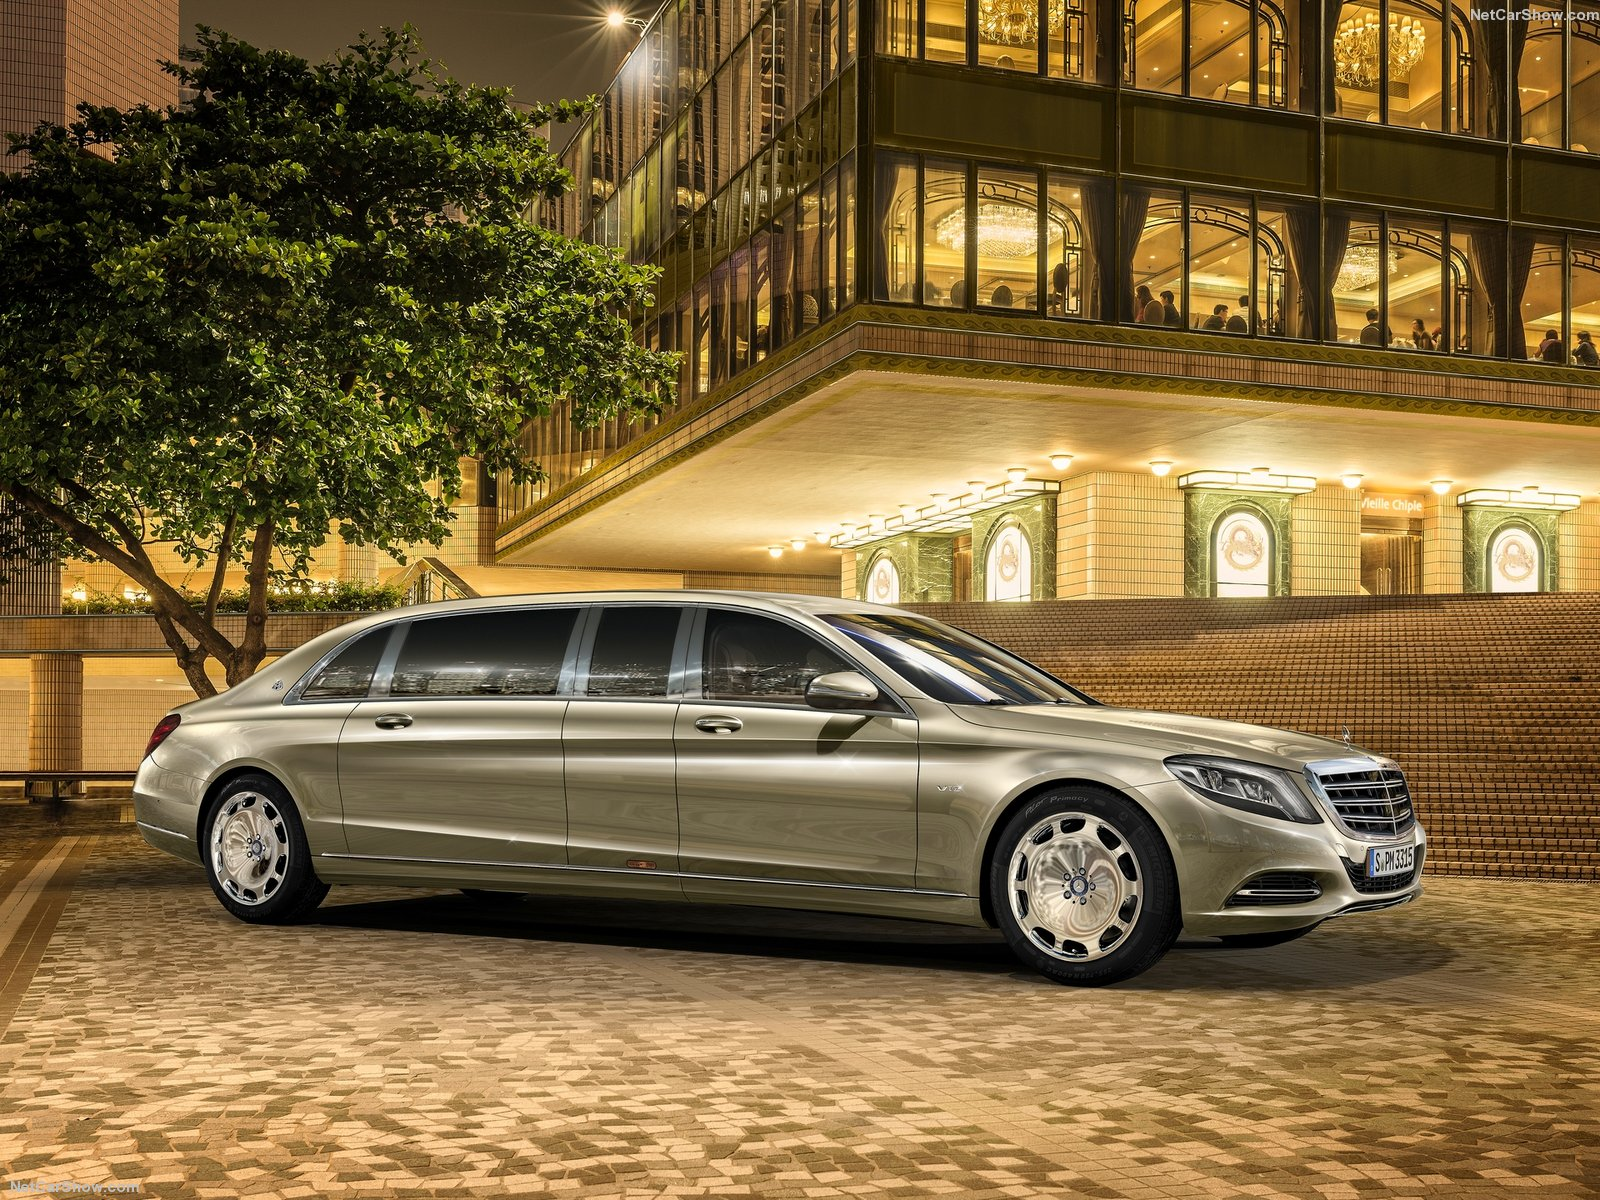 Mercedes-Benz-S600_Pullman_Maybach_2016_1600x1200_wallpaper_01.jpg